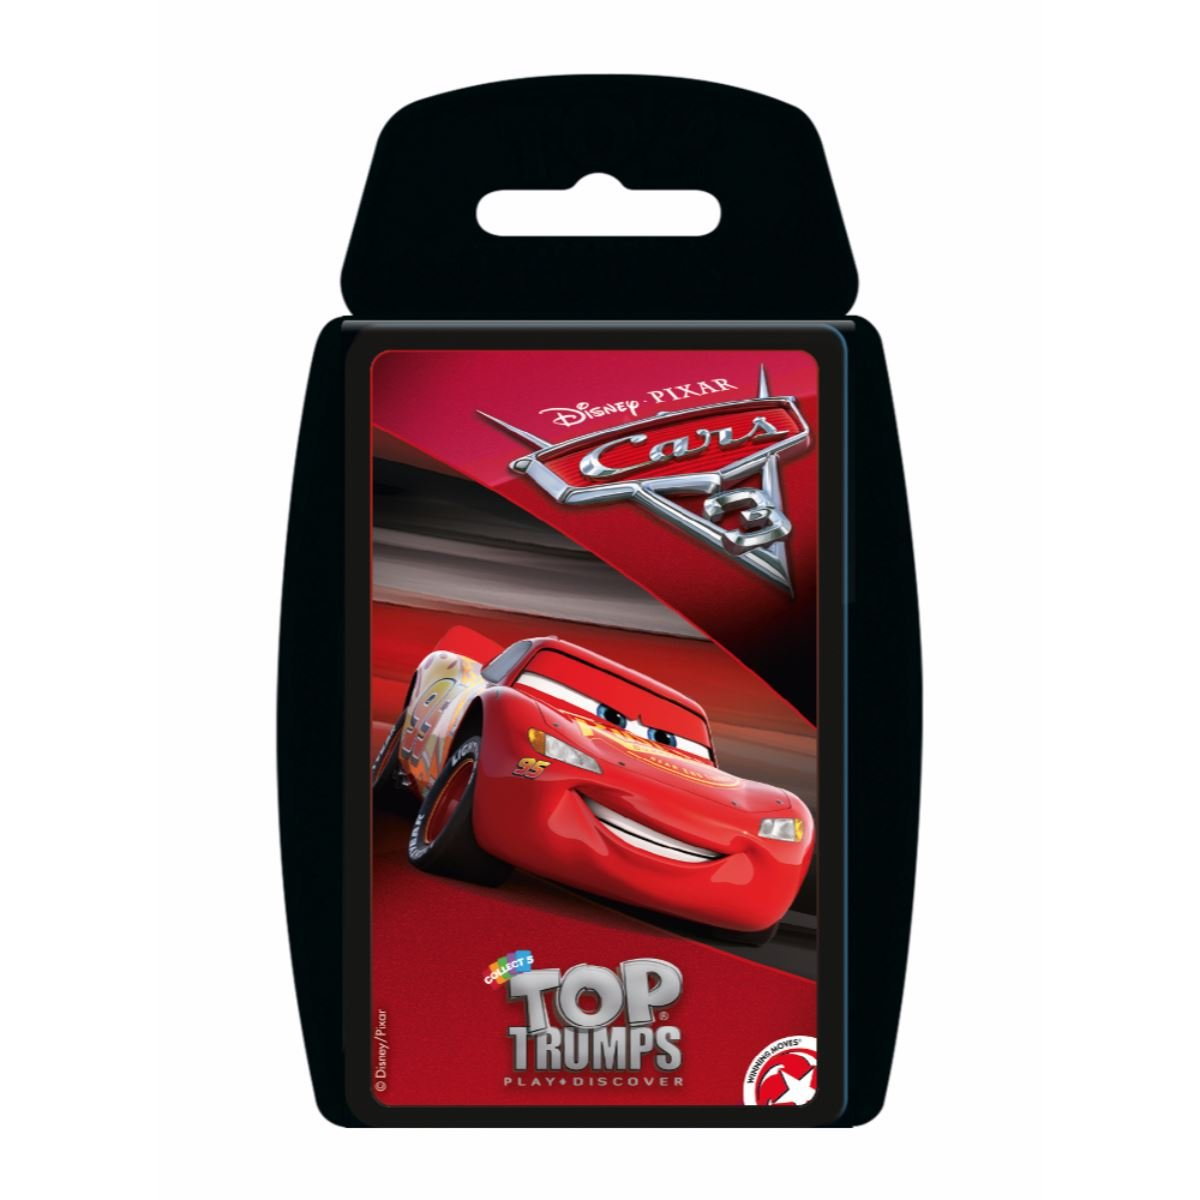 36% off Cars 3 Top Trumps Card Game